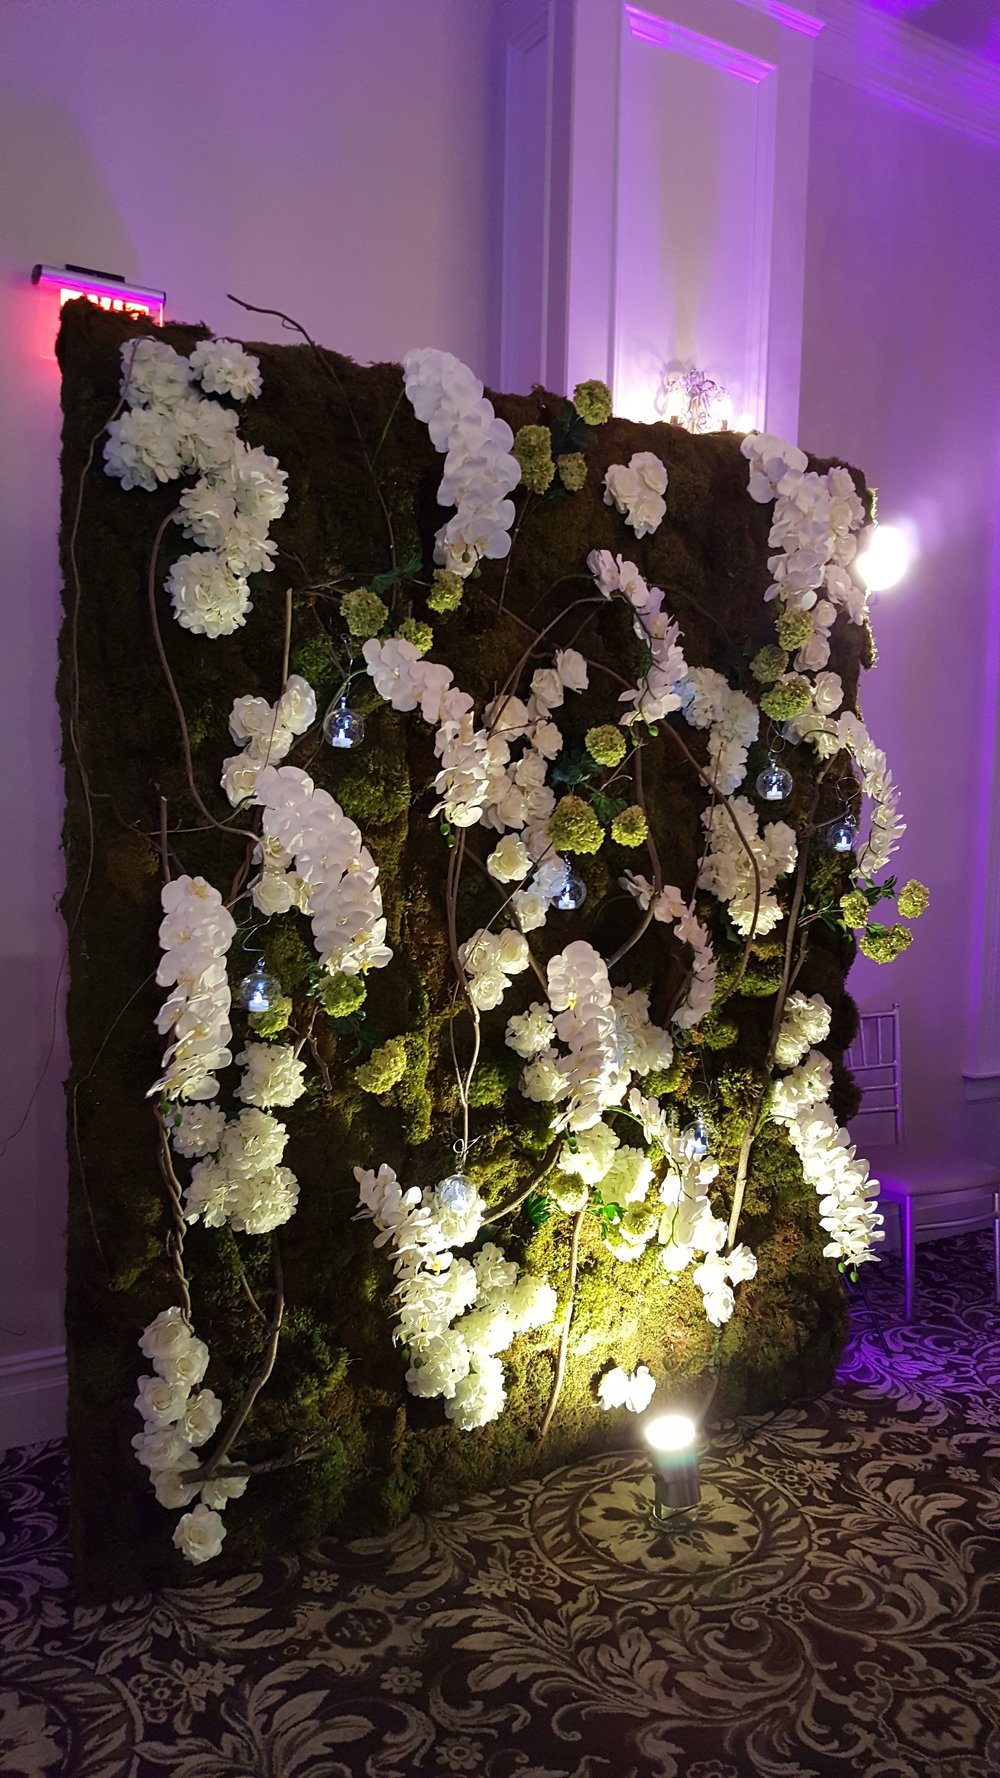 Decorative florals made for a wedding reception by Bouquets & Beyond